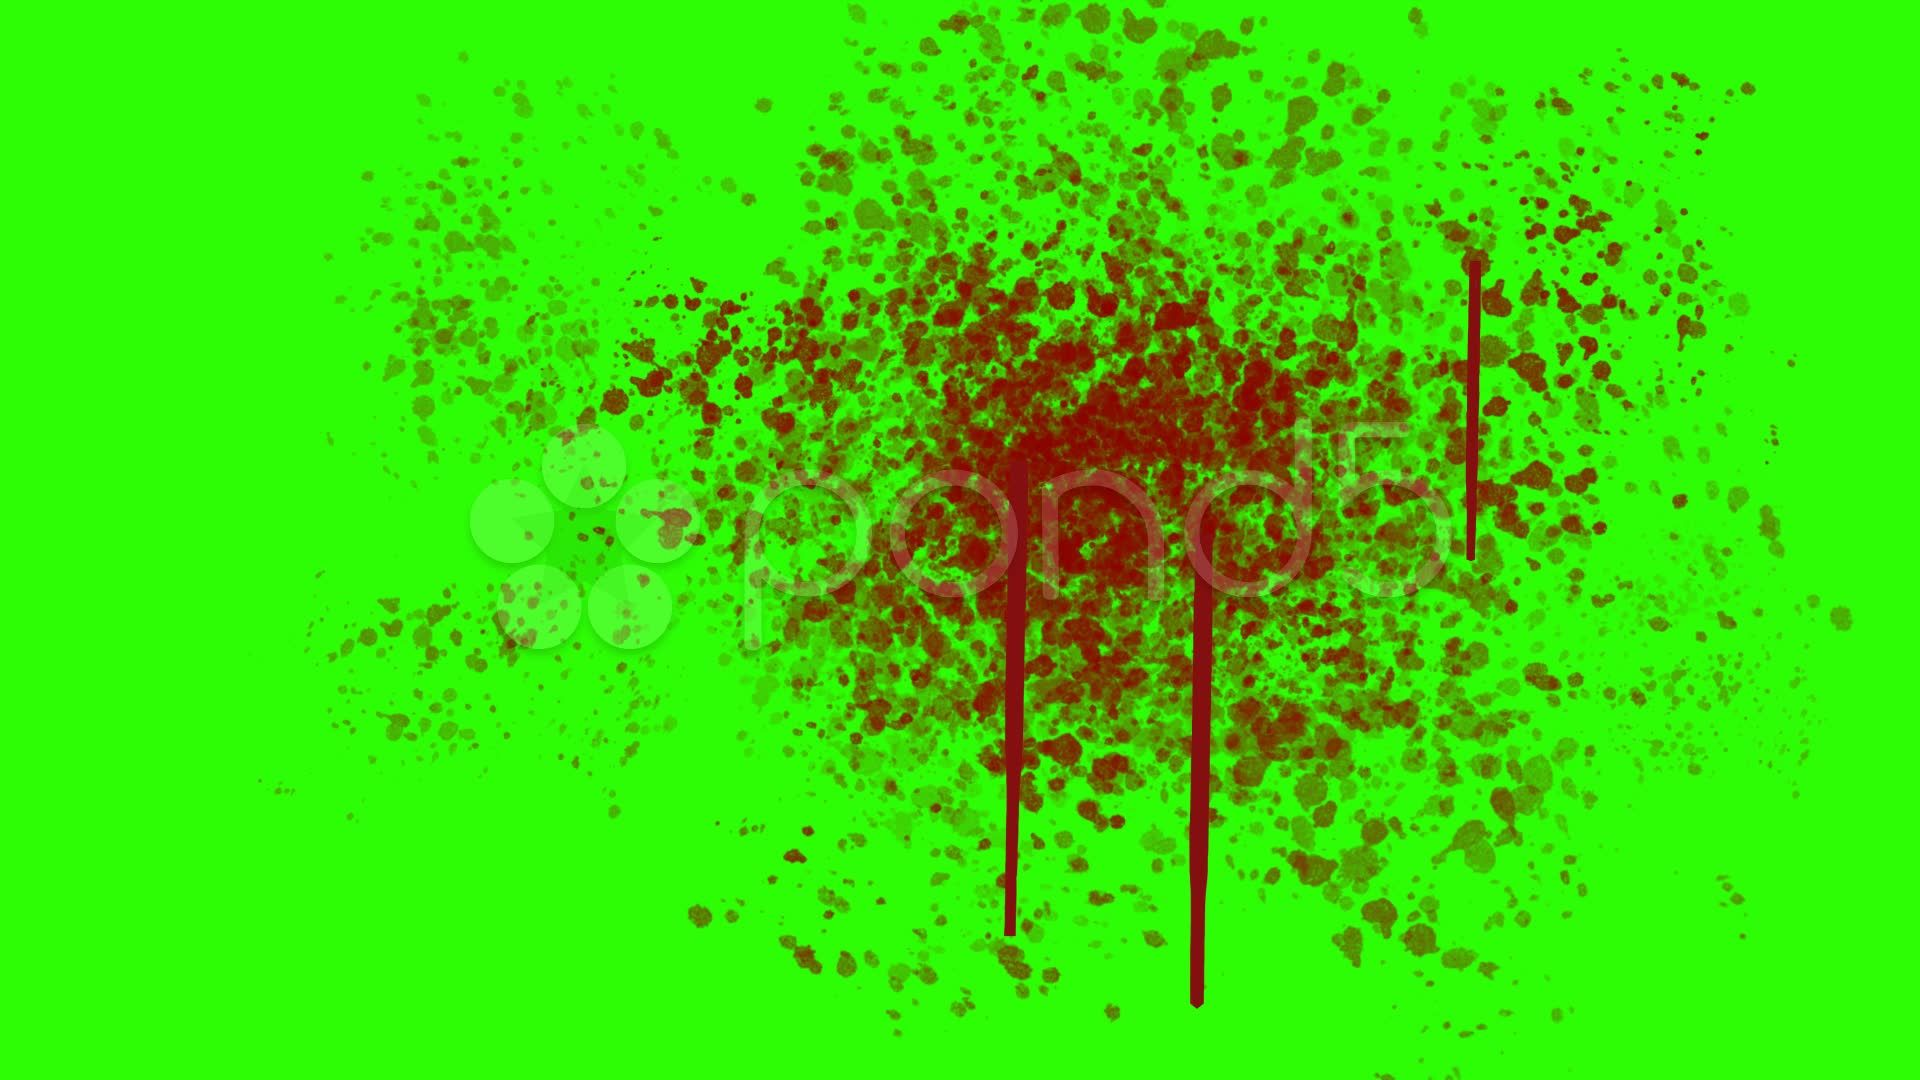 Blood Splatter on the Wall on a Green Screen Background Stock